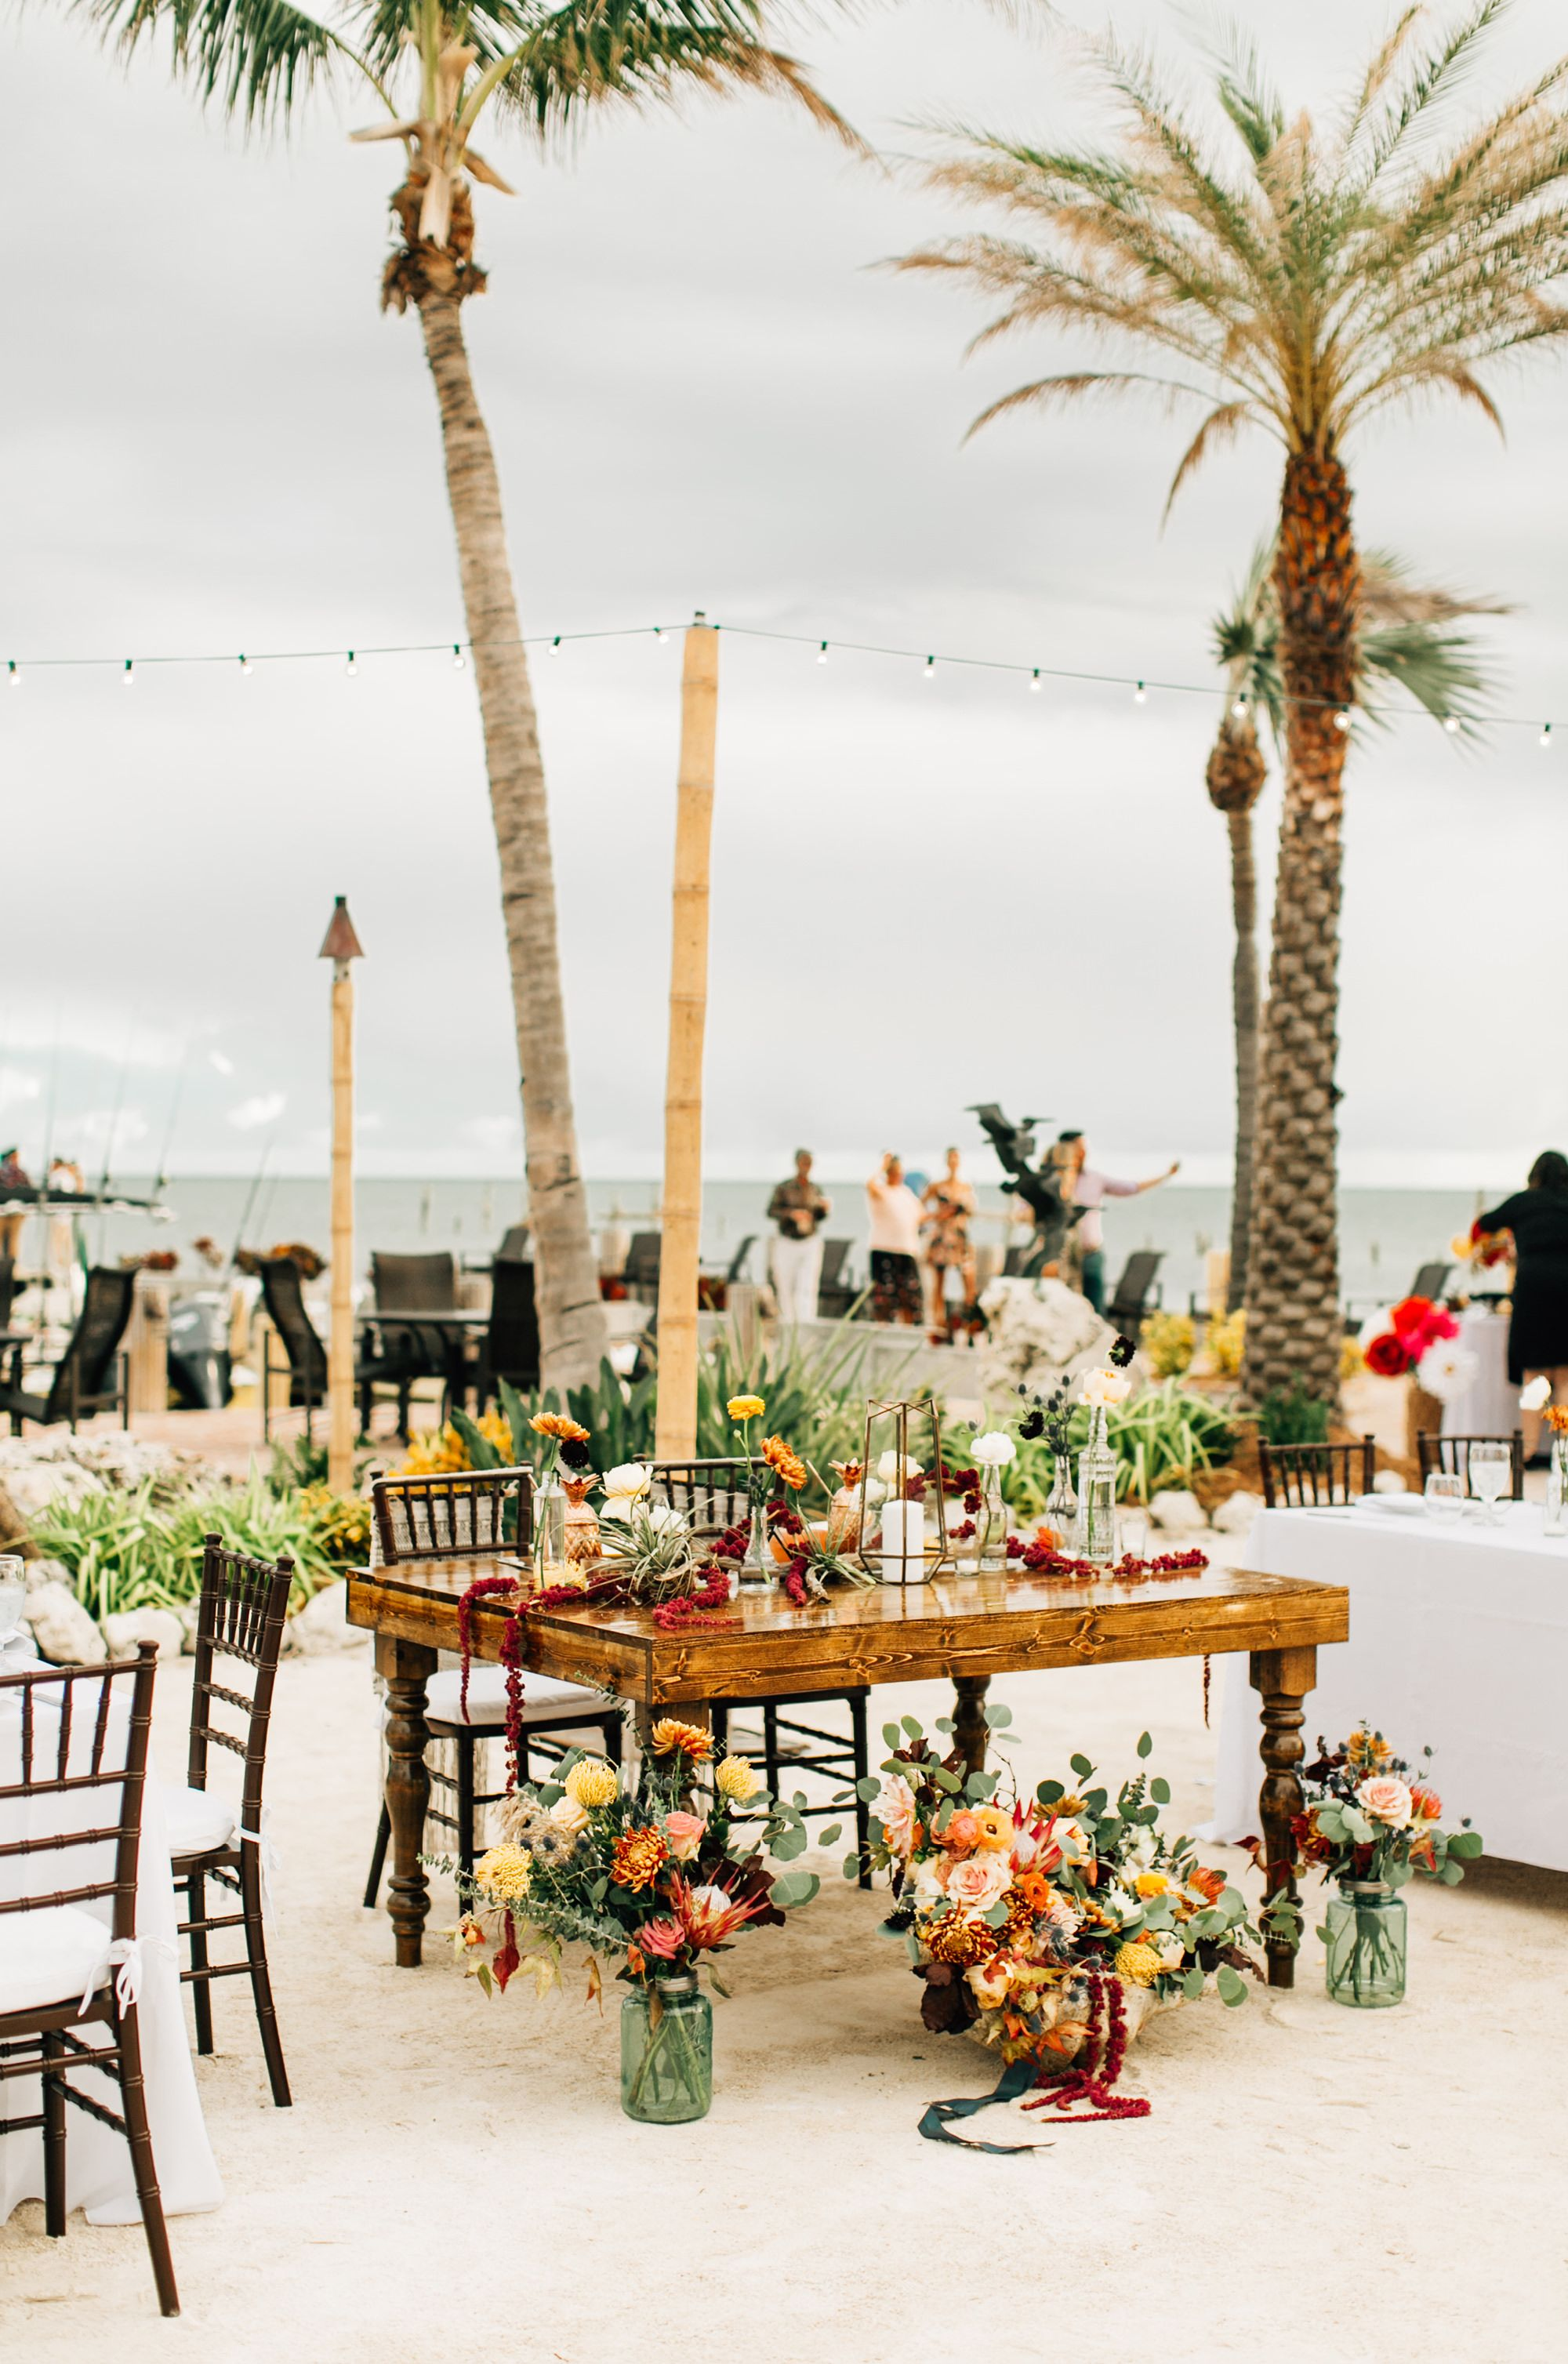 Outstanding Caribbean Wedding Theme Ensign - Wedding Idea 2018 ...